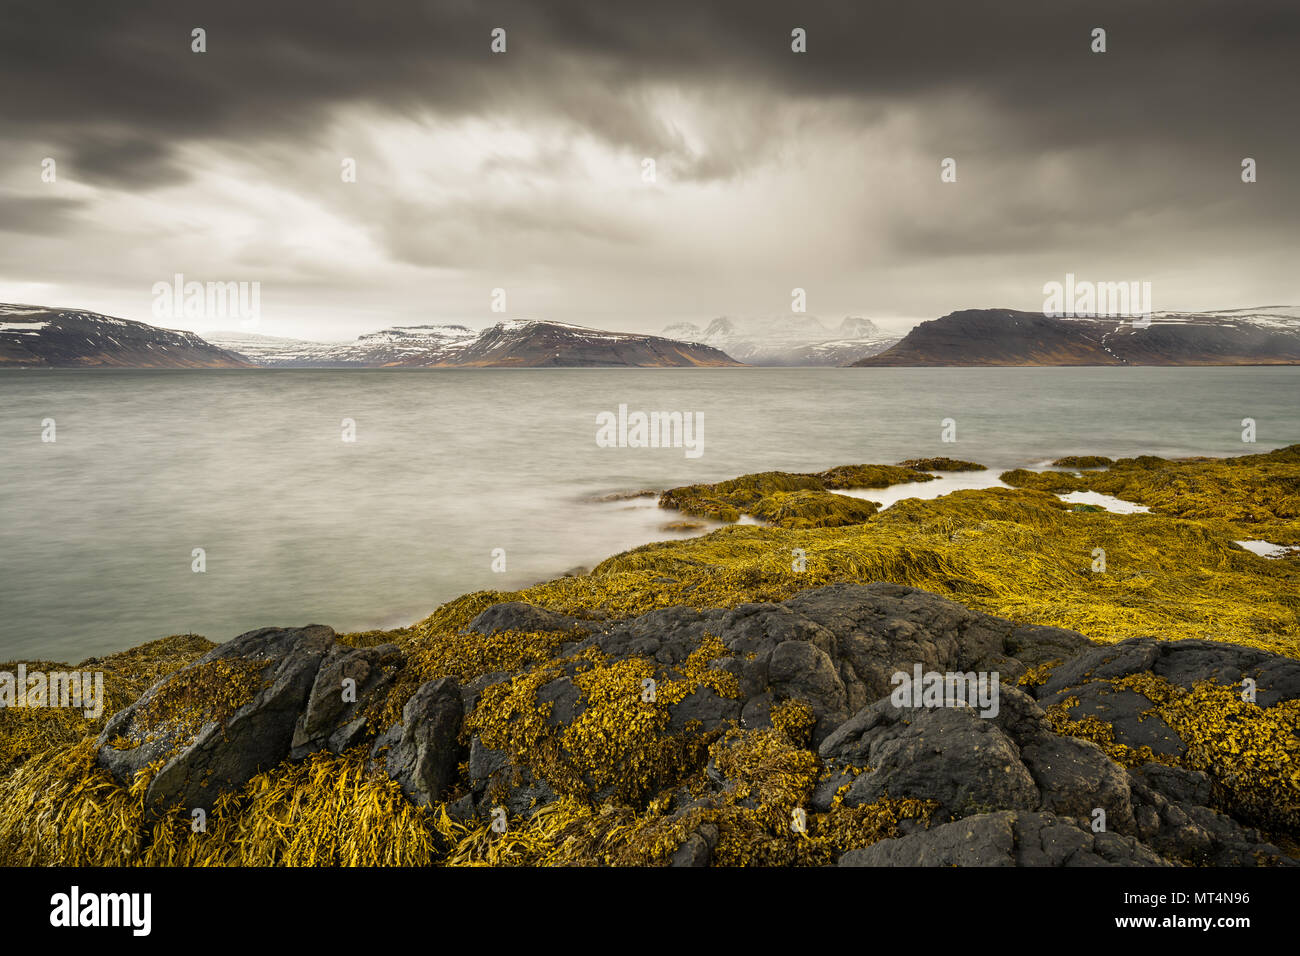 Seagrass and rocks at Suðurfirðir in the Westfjords of Iceland. - Stock Image